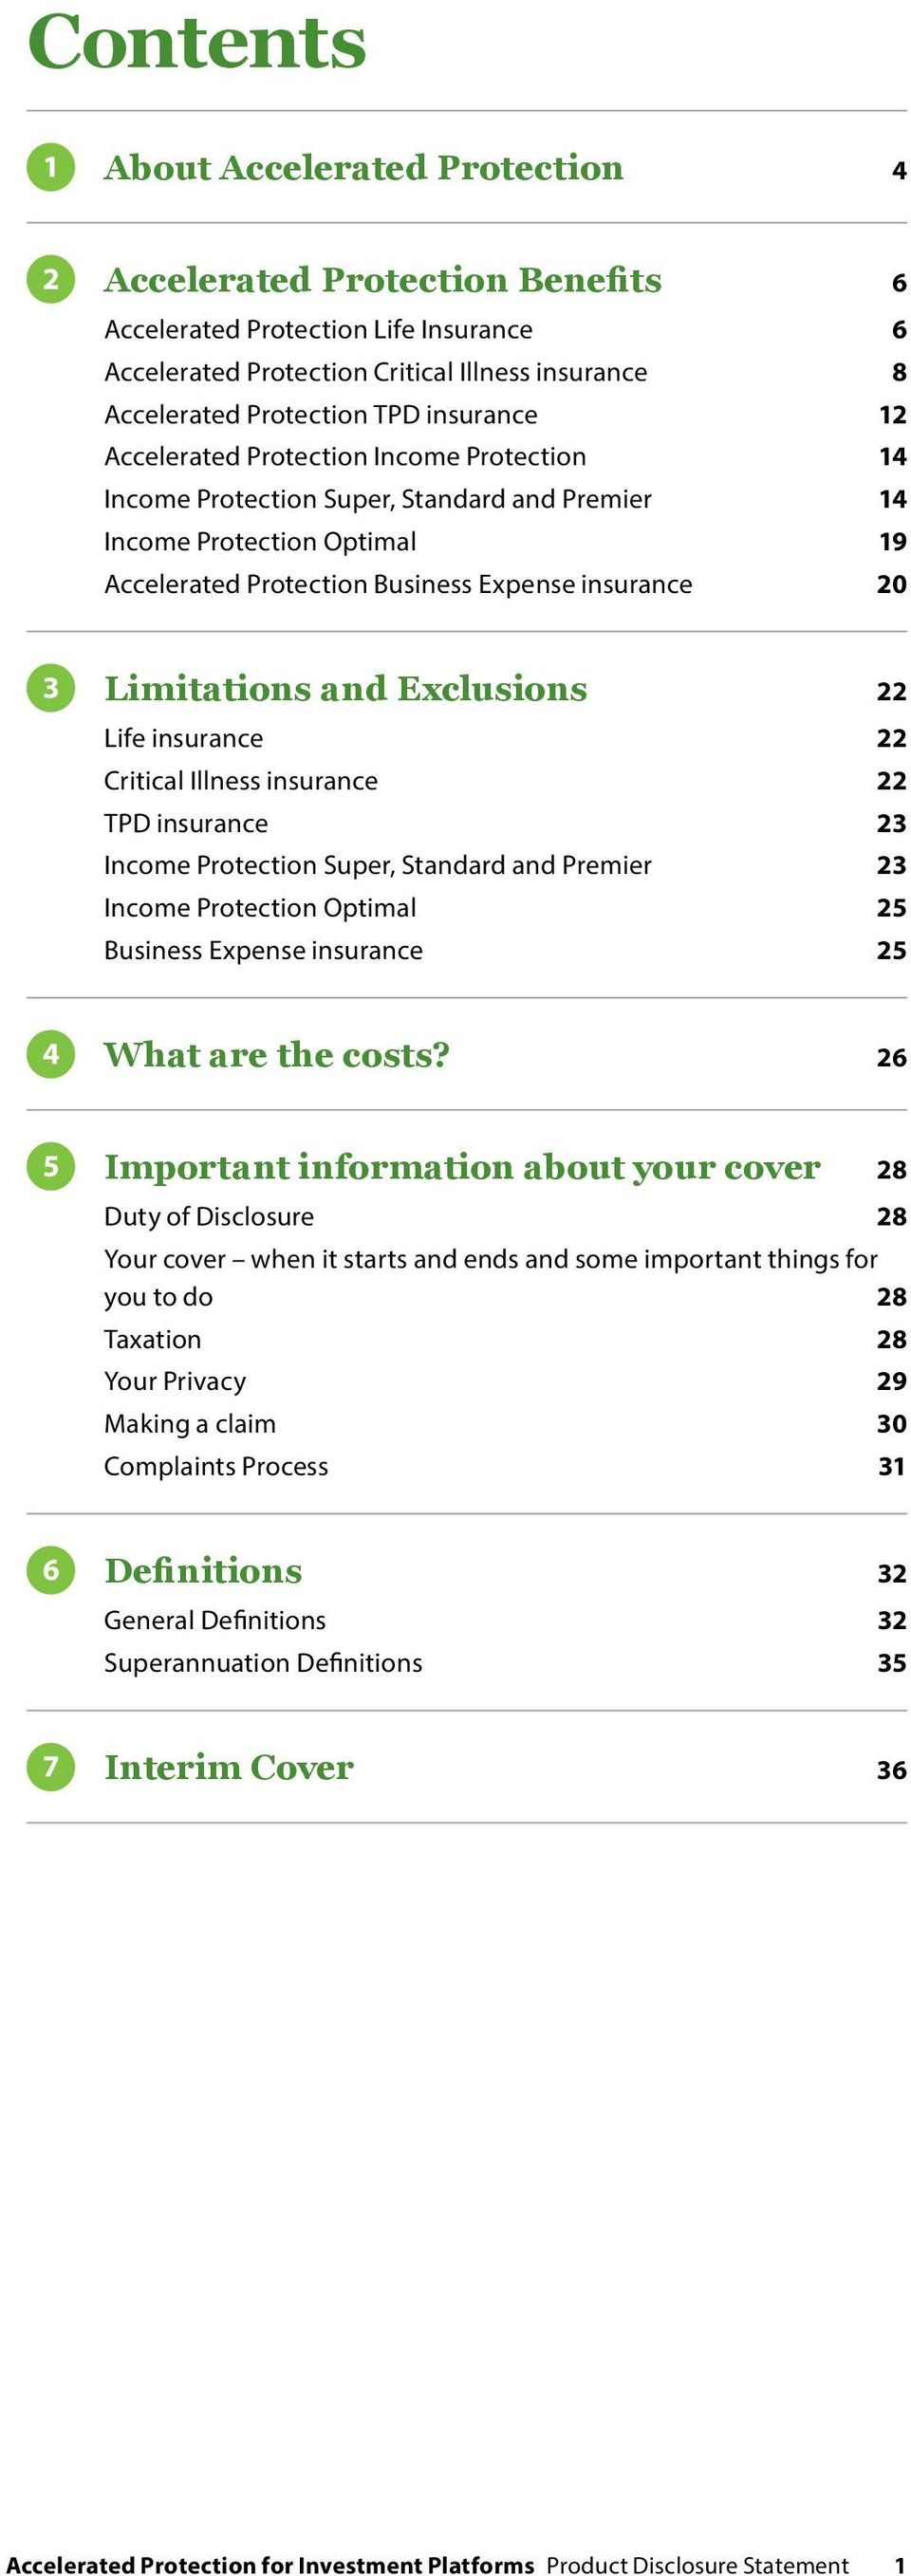 Exclusions 22 Life insurance 22 Critical Illness insurance 22 TPD insurance 23 Income Protection Super, Standard and Premier 23 Income Protection Optimal 25 Business Expense insurance 25 4 What are